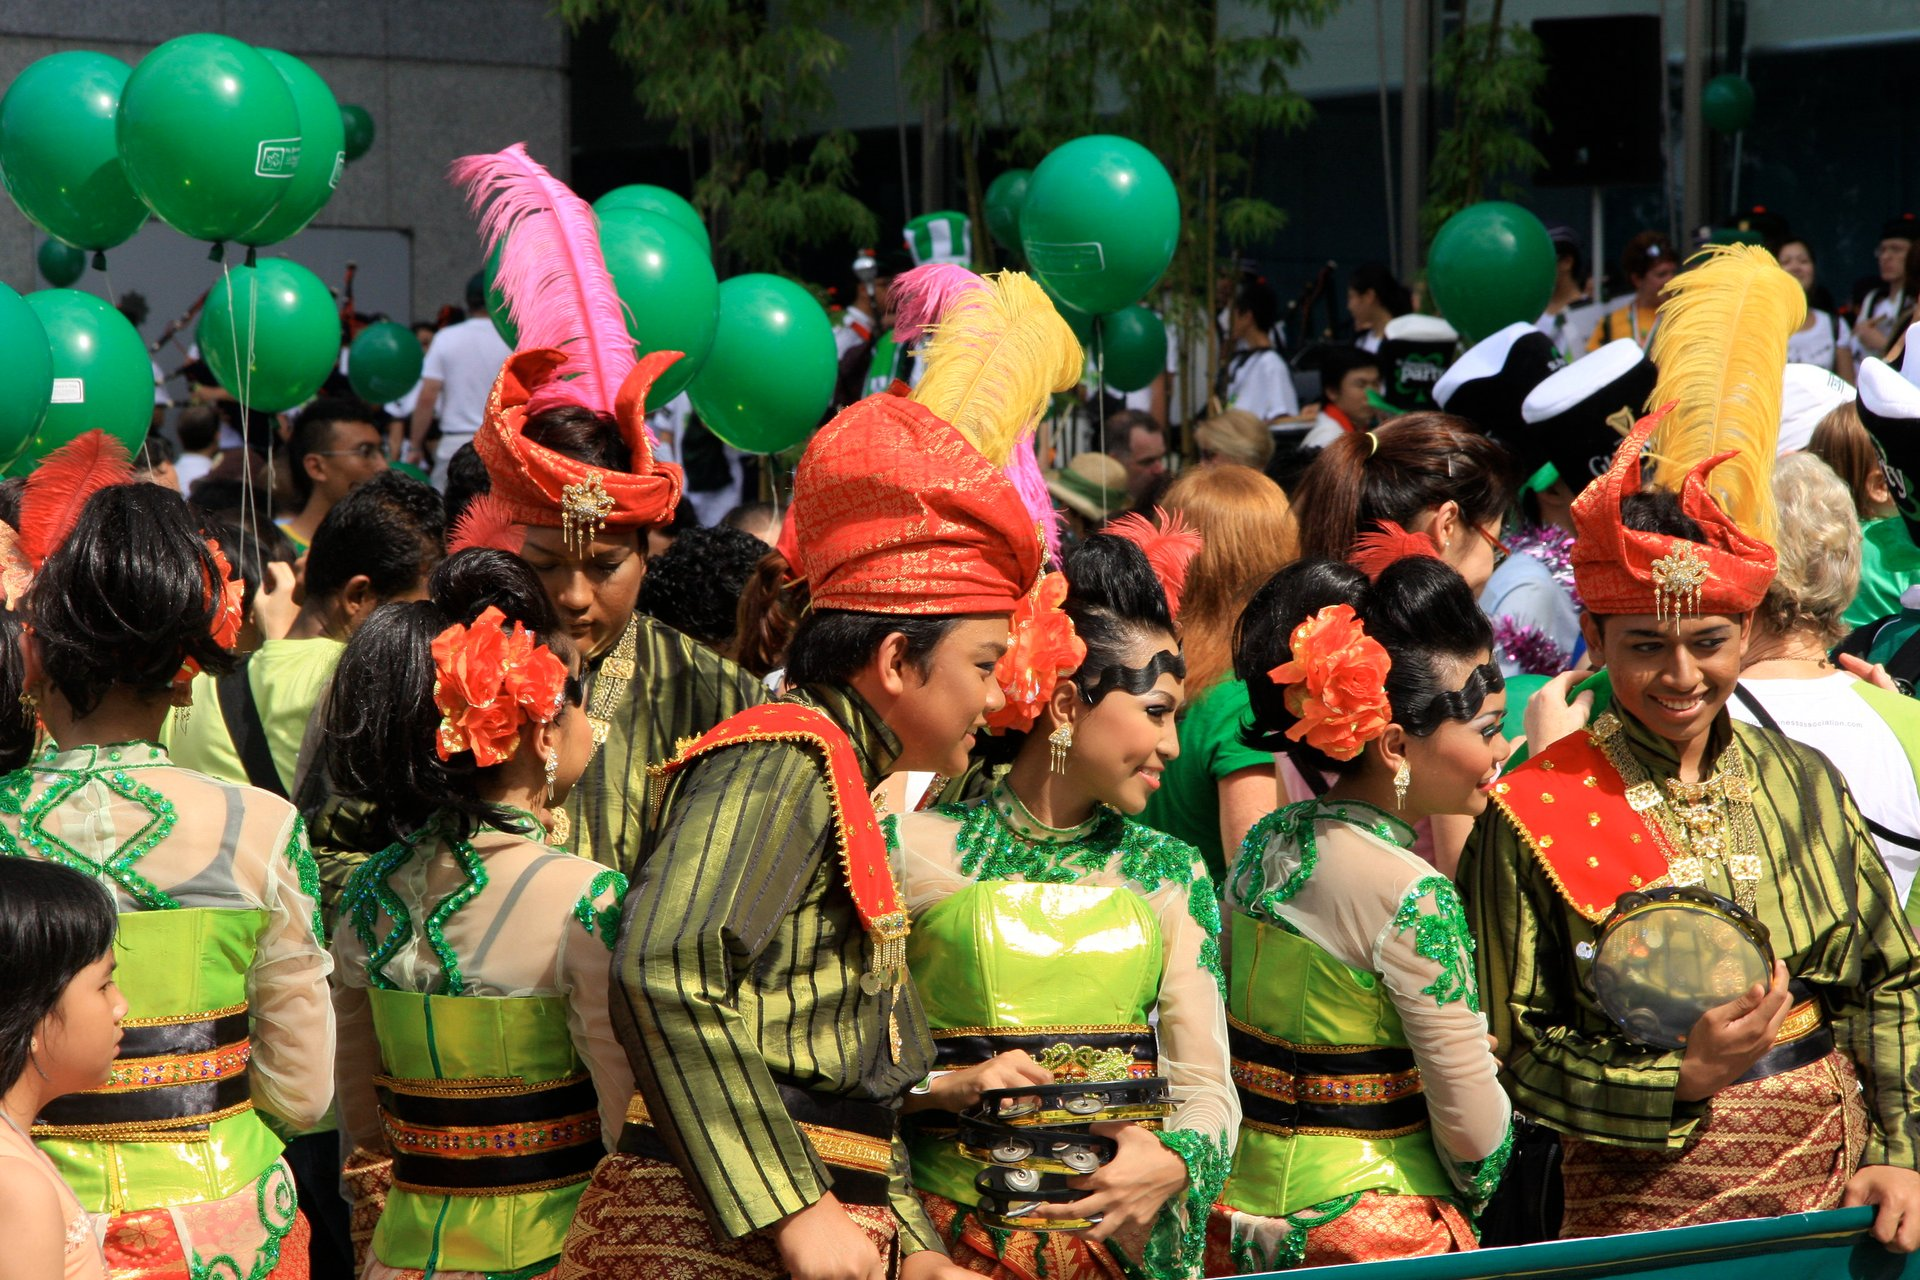 Best time for St. Patrick's Day Street Festival Singapore in Singapore 2020